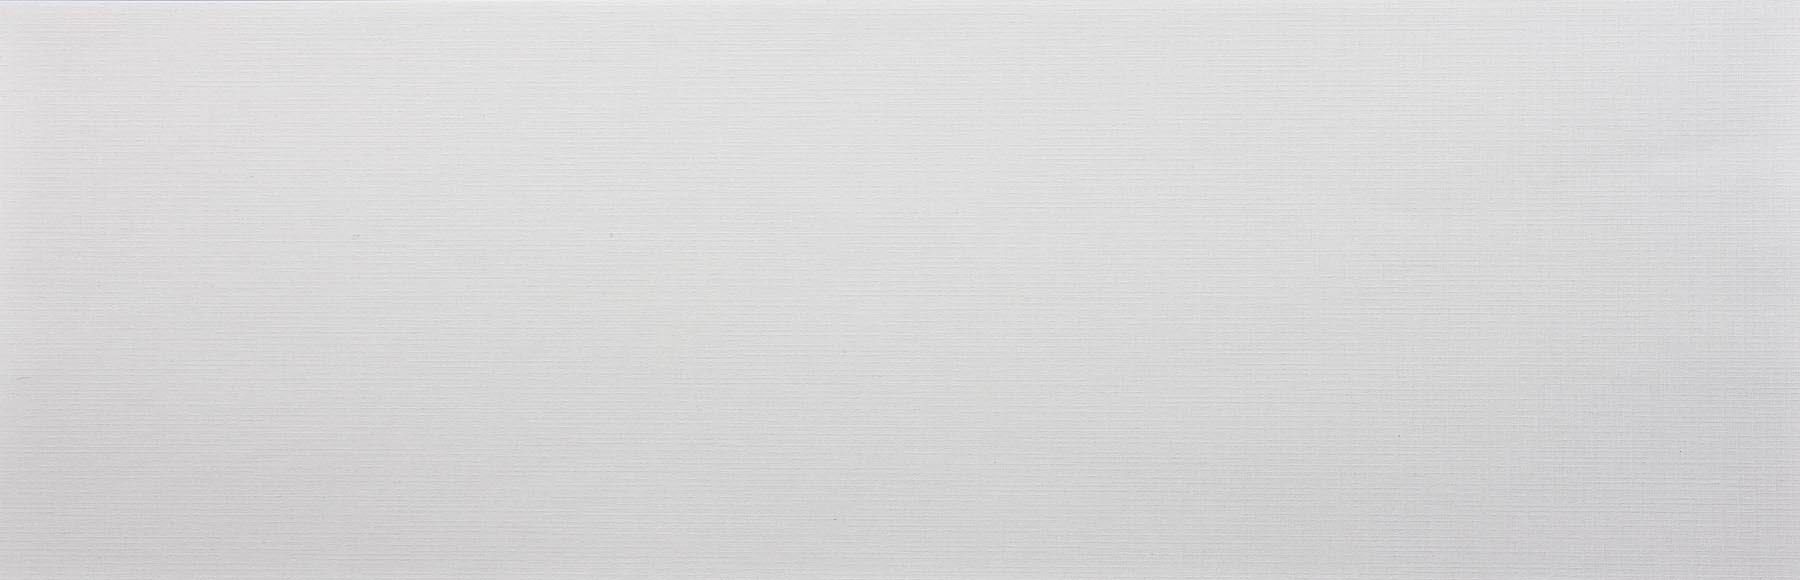 white-paper-background-cardboard-texture-hd_HP